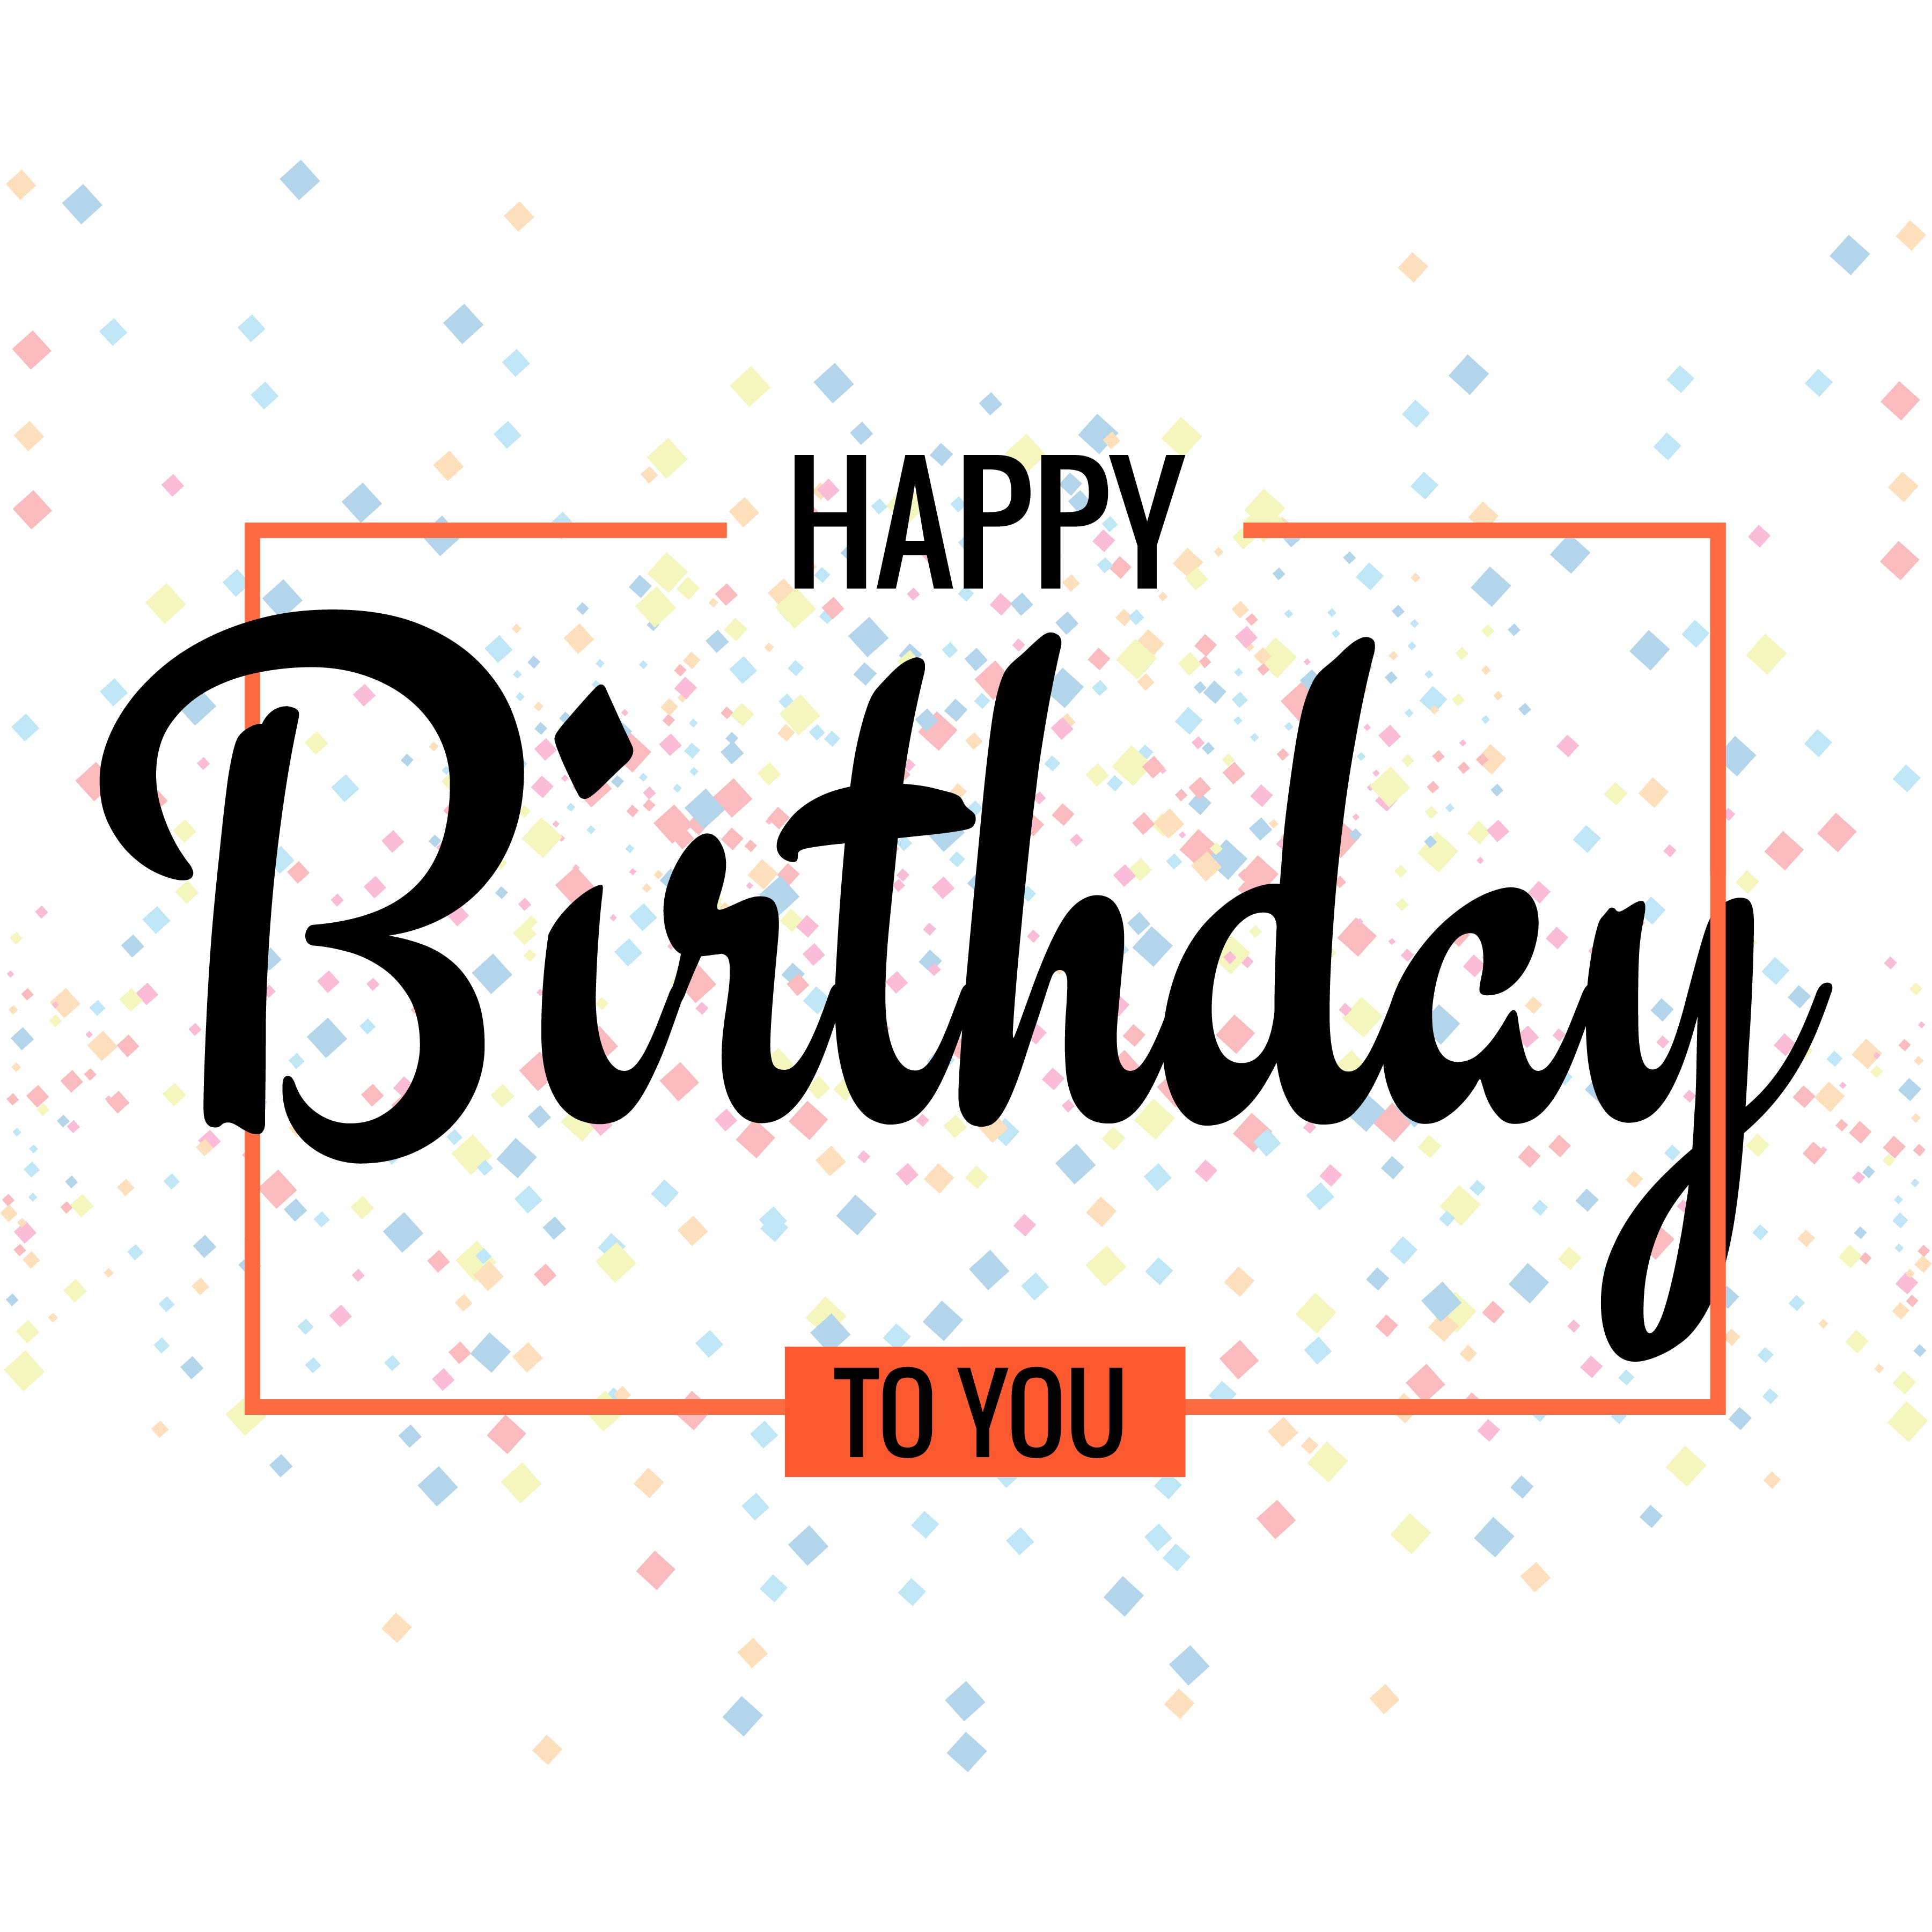 Happy Birthday Beautiful Greeting Card Poster Design Download Free Vectors Clipart Graphics Vector Art